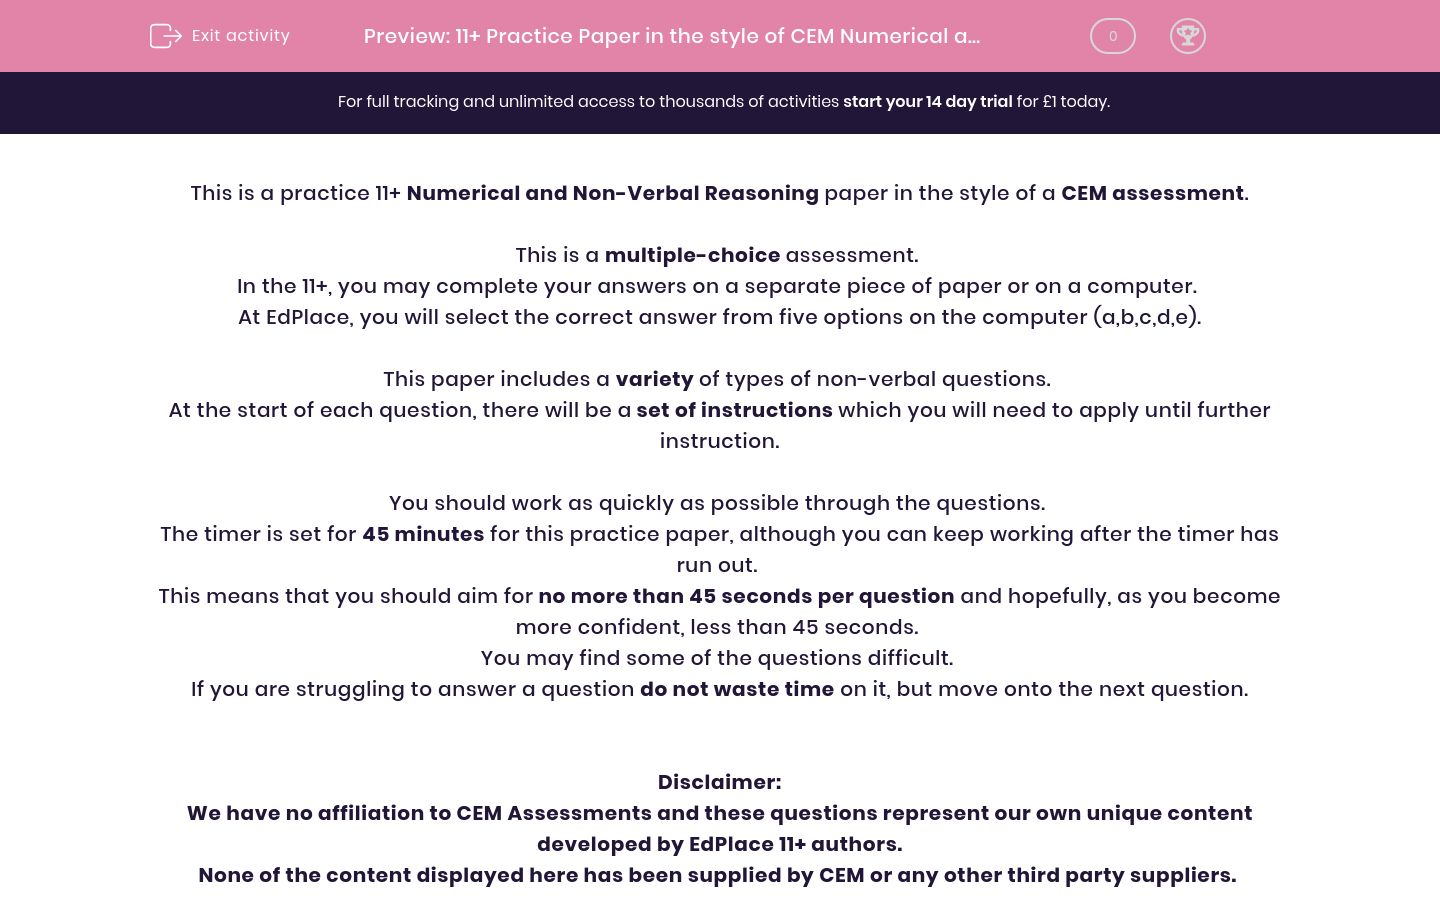 '11+ Practice Paper in the style of CEM Numerical and Non-Verbal Reasoning' worksheet